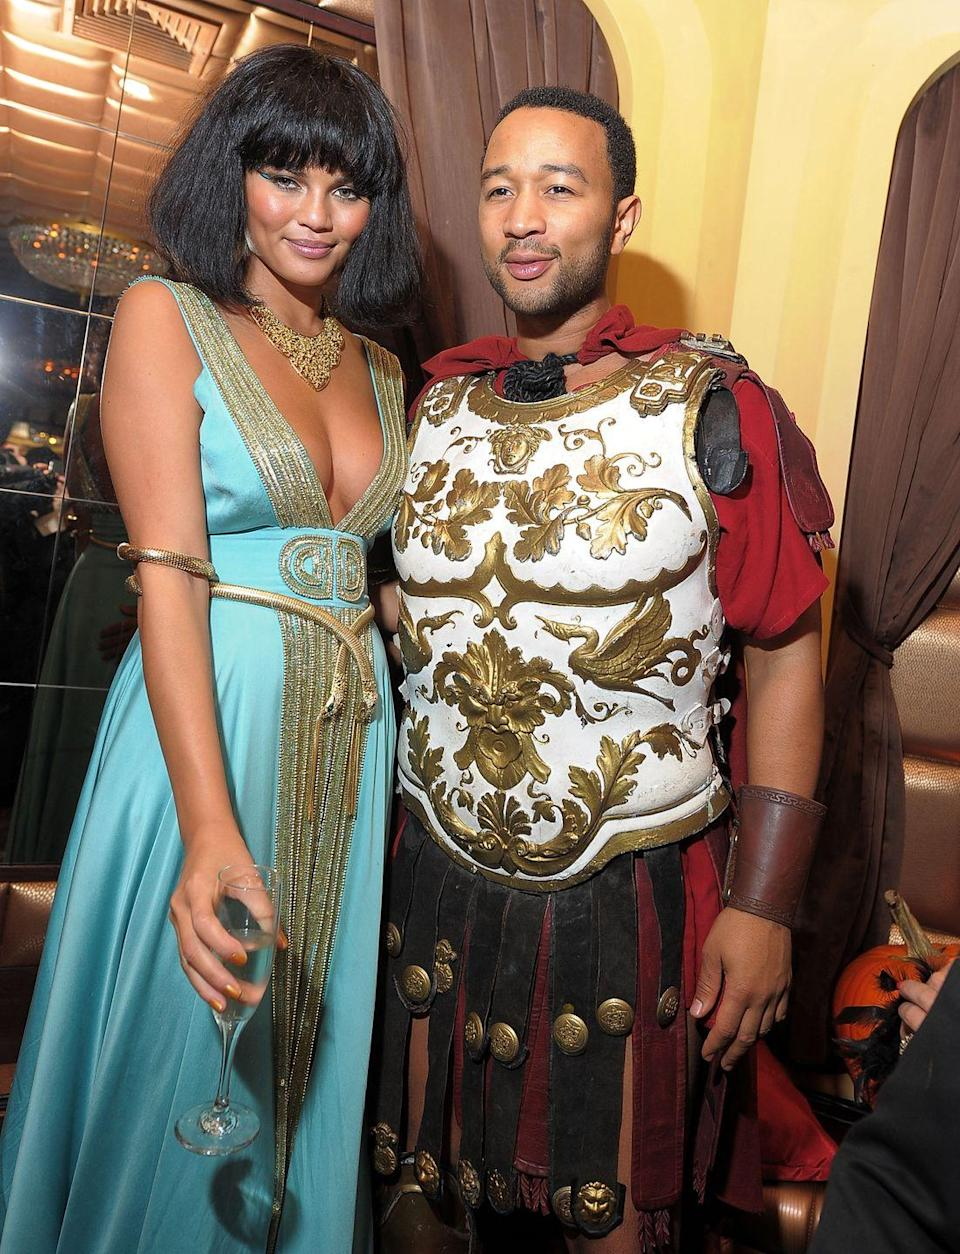 <p>Model Chrissy Teigen and musician John Legend attended Heidi Klum's 2010 Halloween party in New York City dressed up as Antony and Cleopatra. I mean, check out that armor.</p>